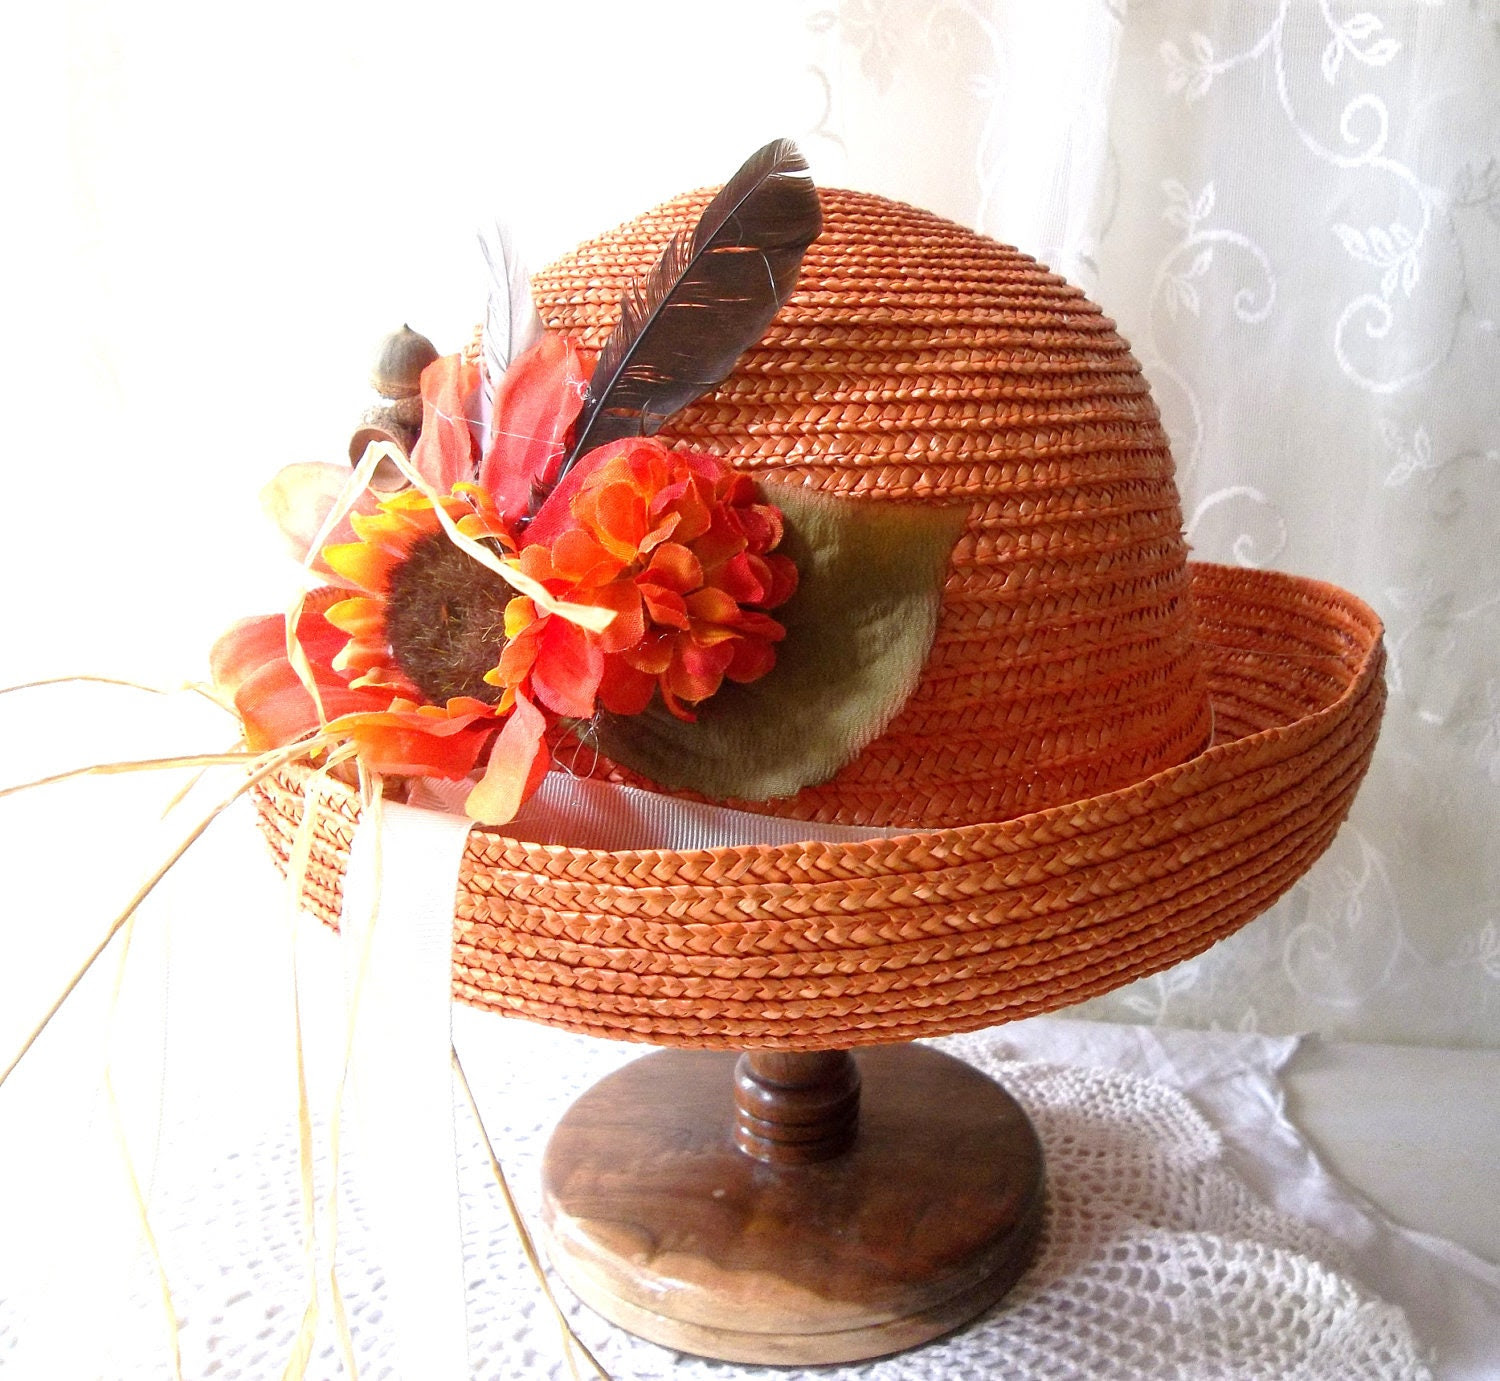 Popular items for rustic urban on Etsy